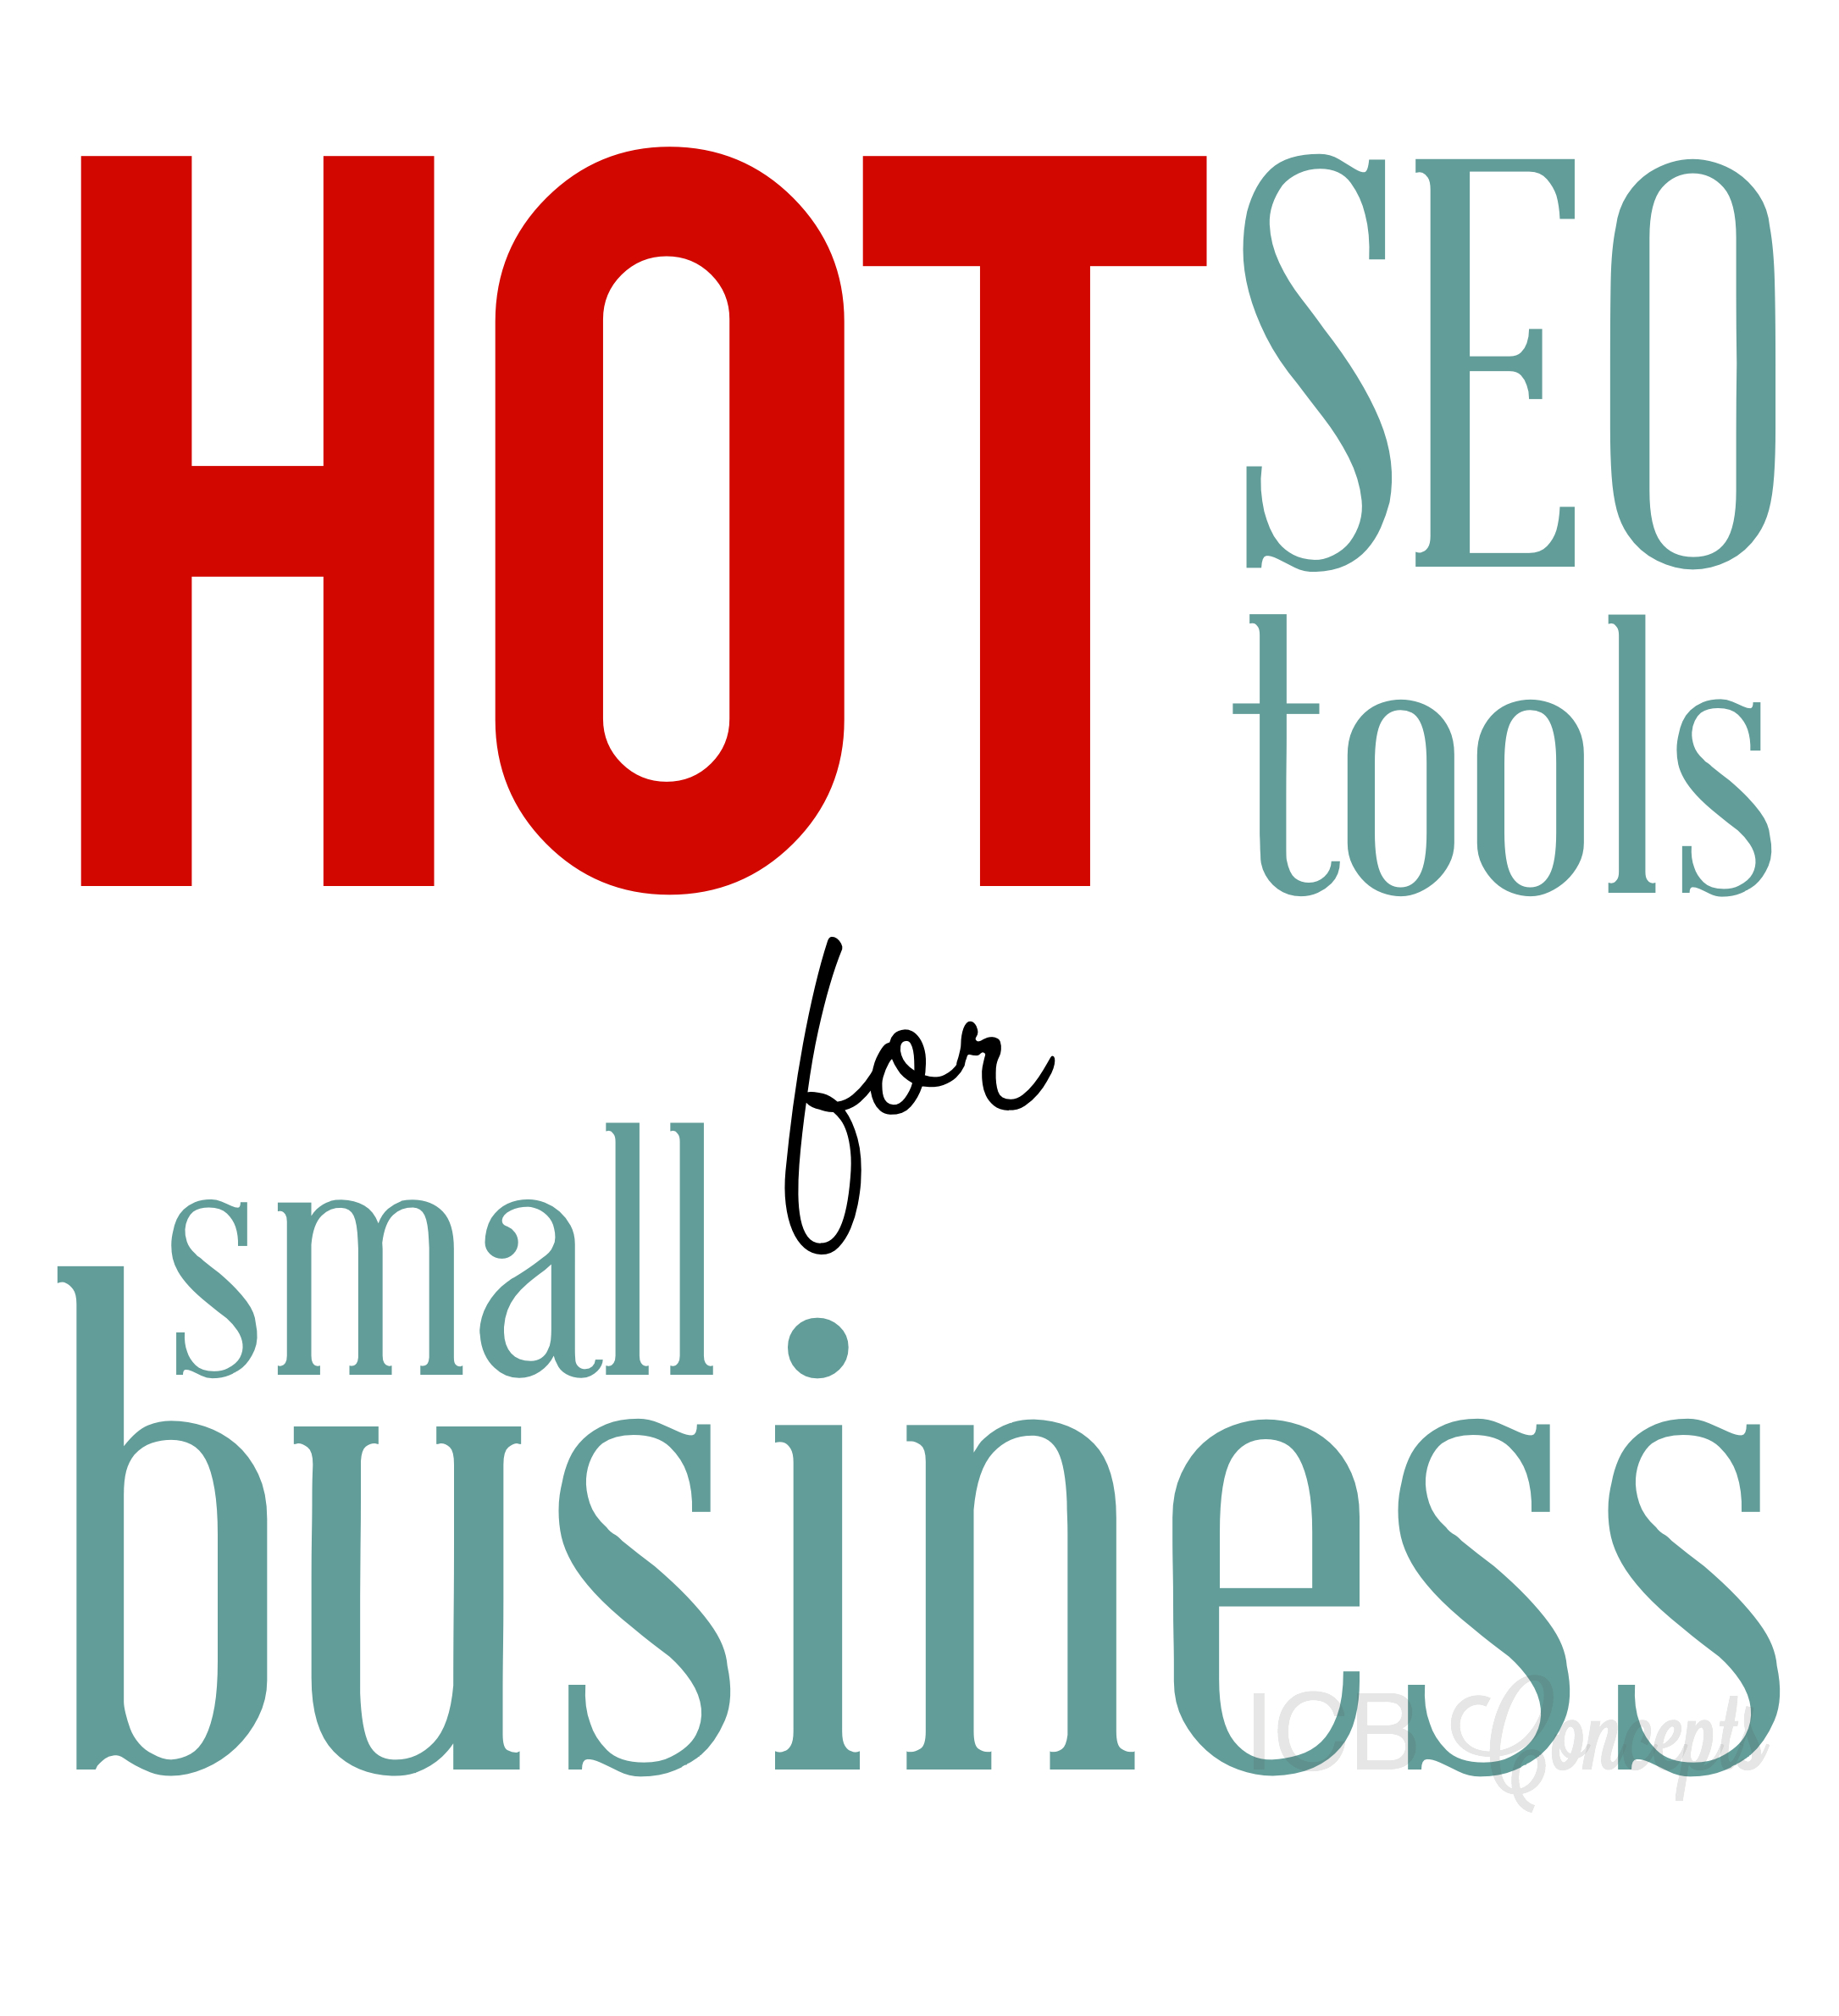 Hot SEO tools for Small Business